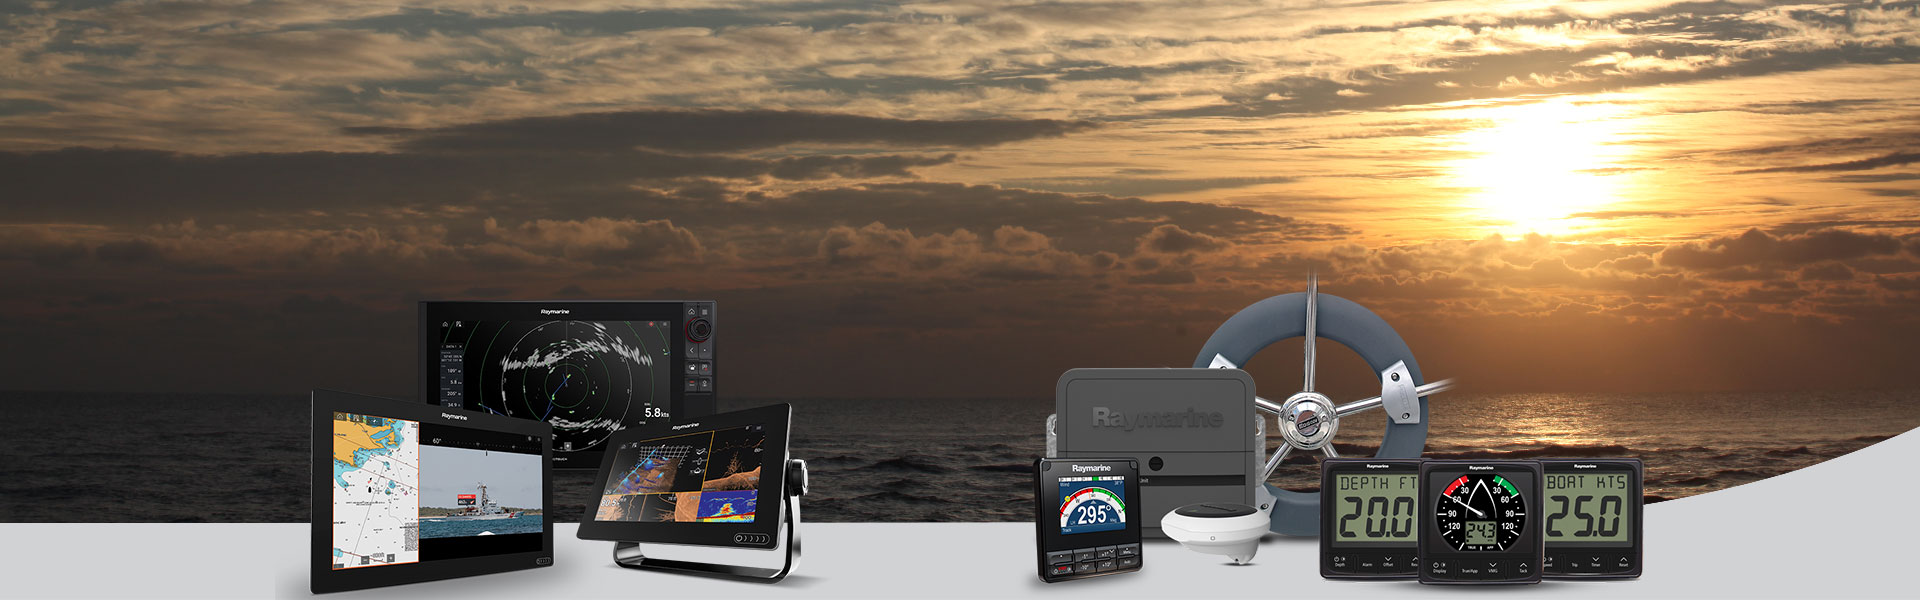 Trade Up Offer 2019 | Raymarine - A Brand by FLIR